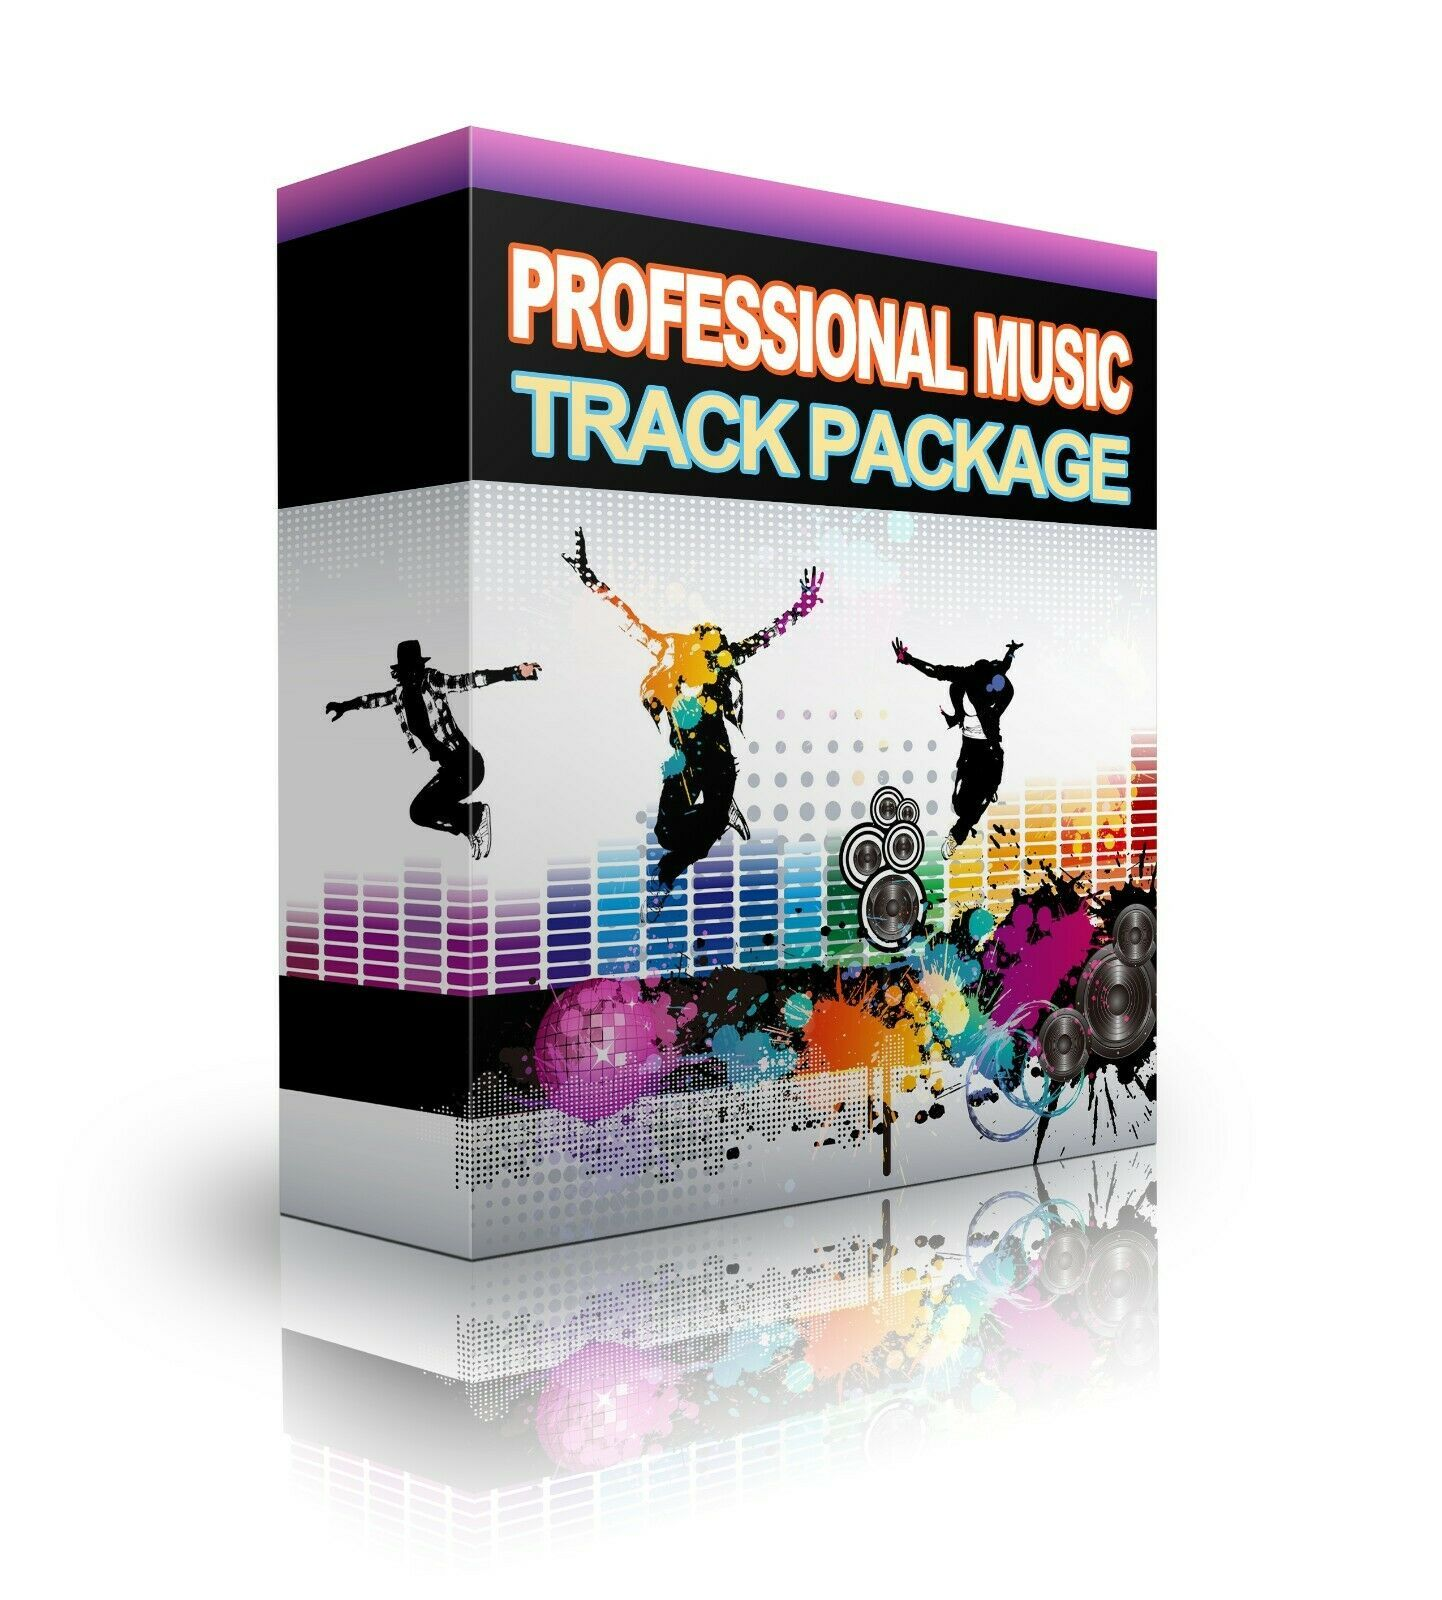 Details about Professional Music Track Package Royalty